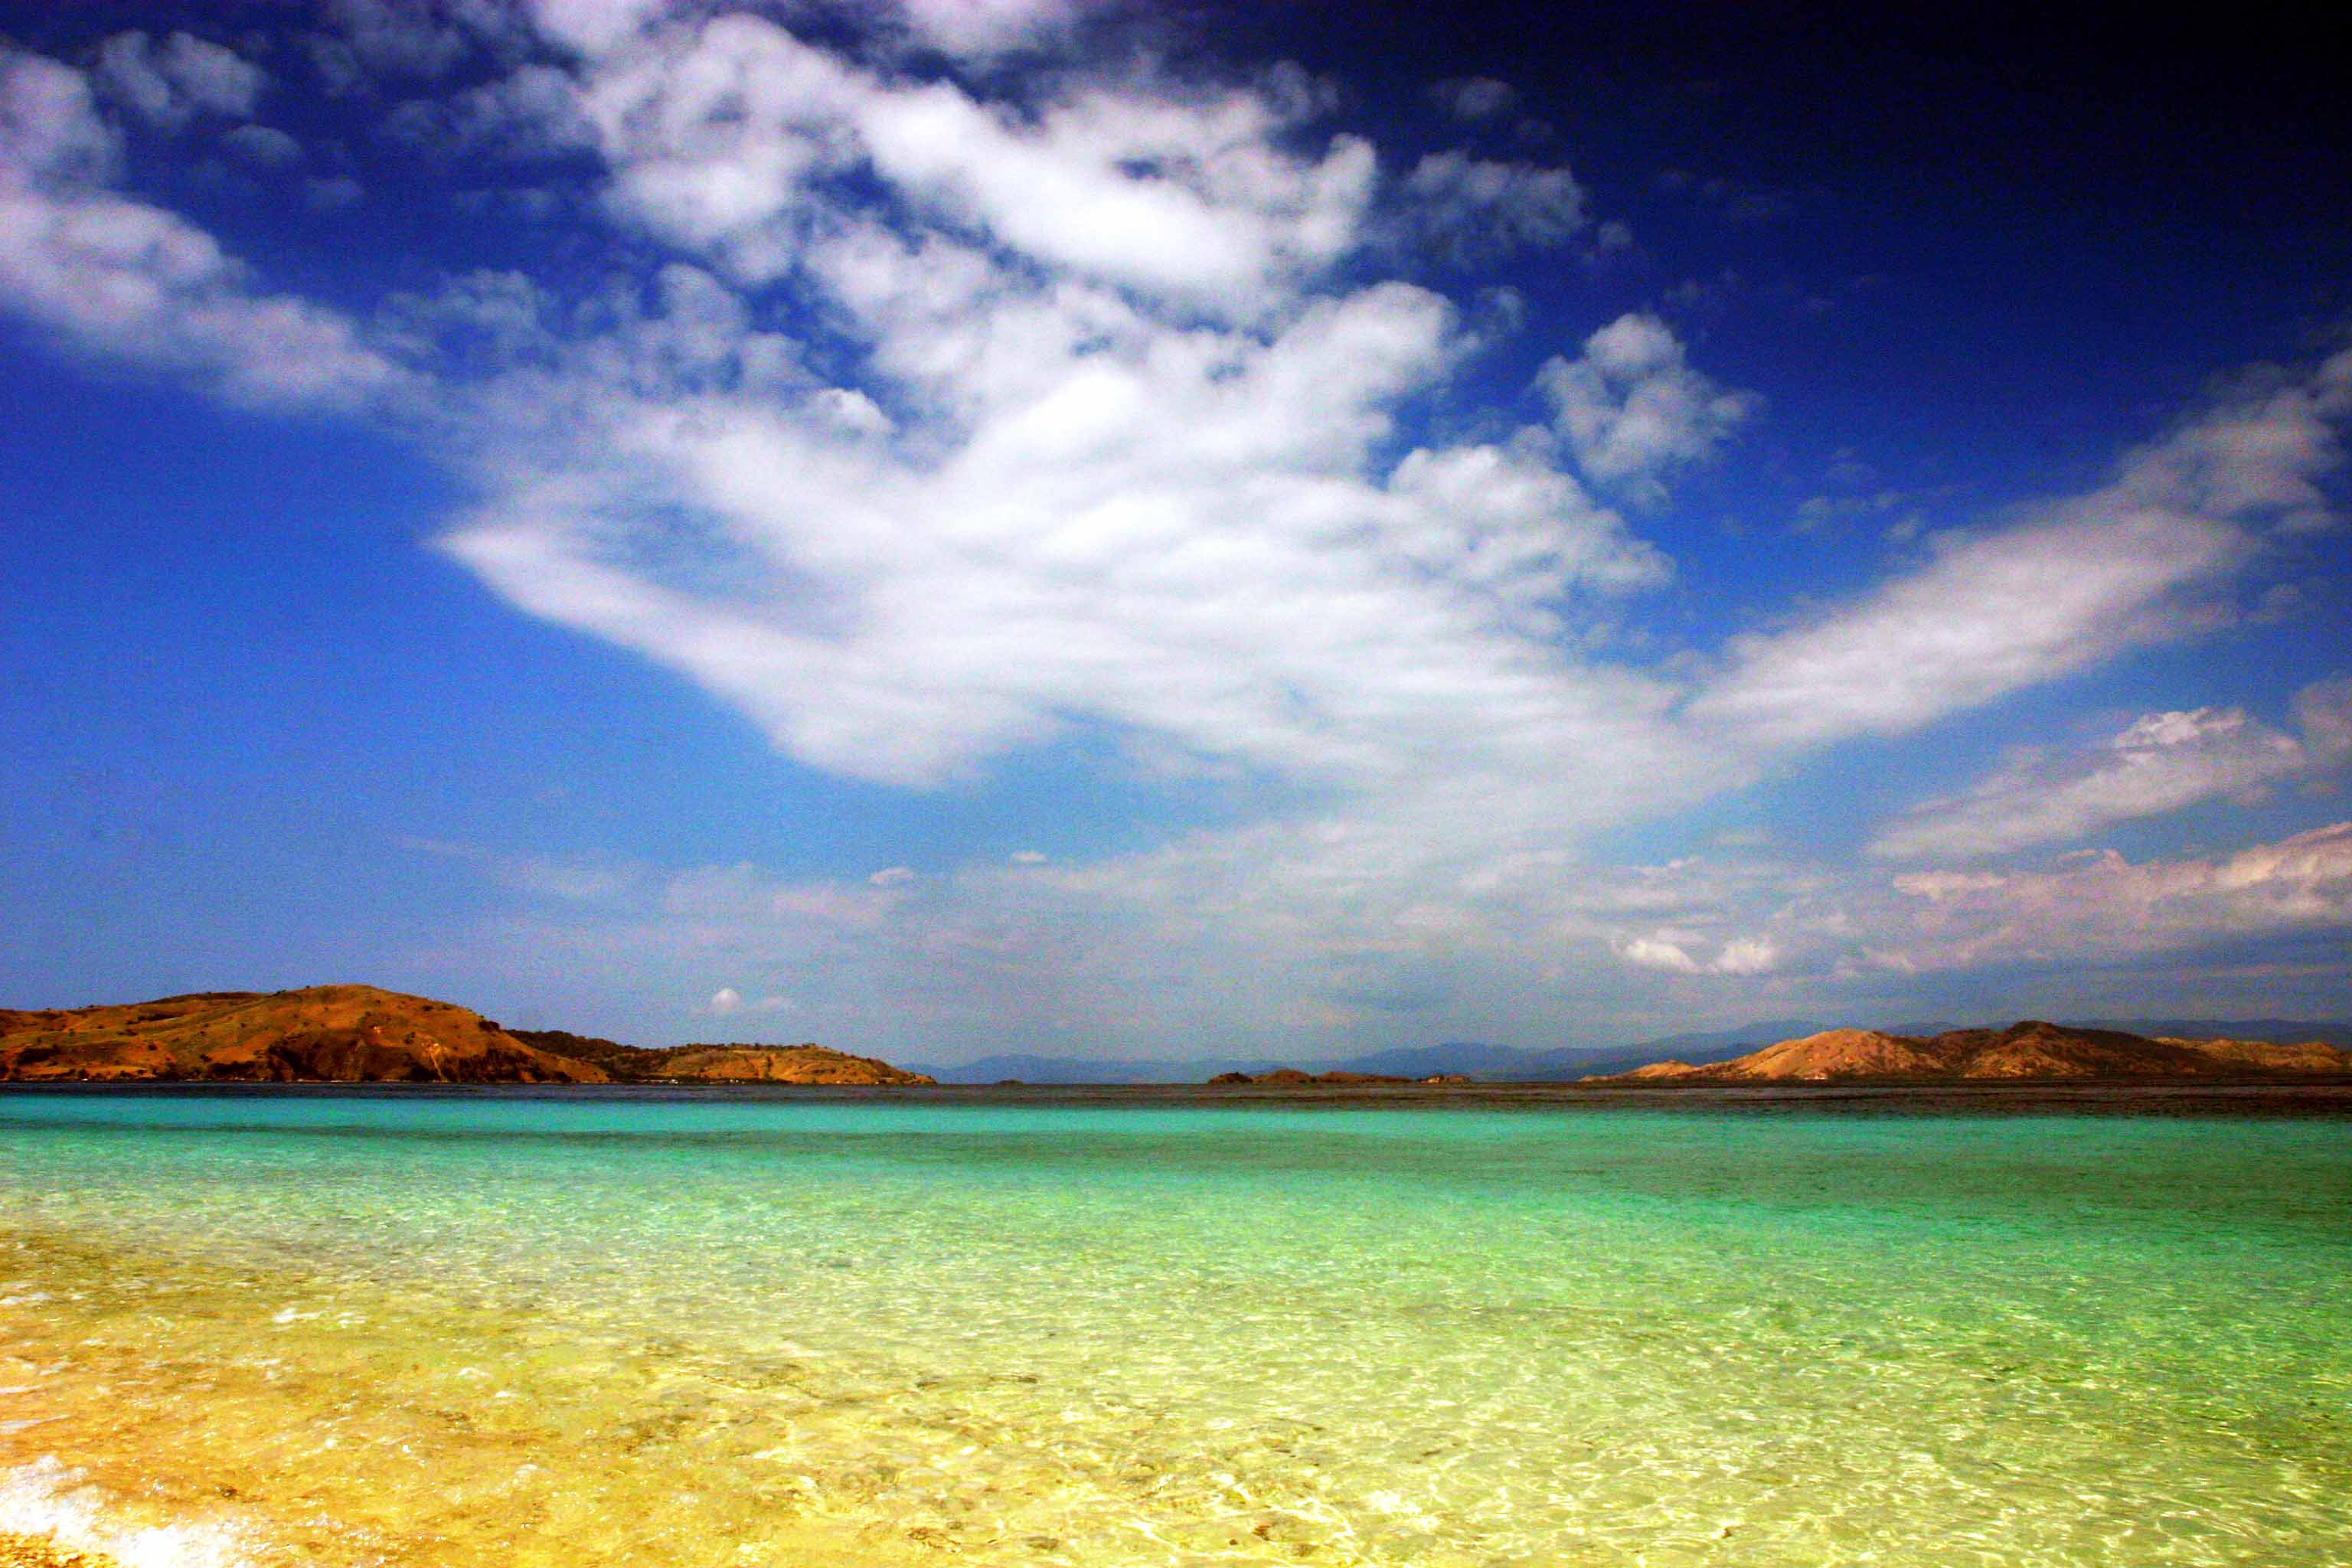 http://vv-travel.ru/files/foto/another-paradise-in-komodo-national-park.jpg